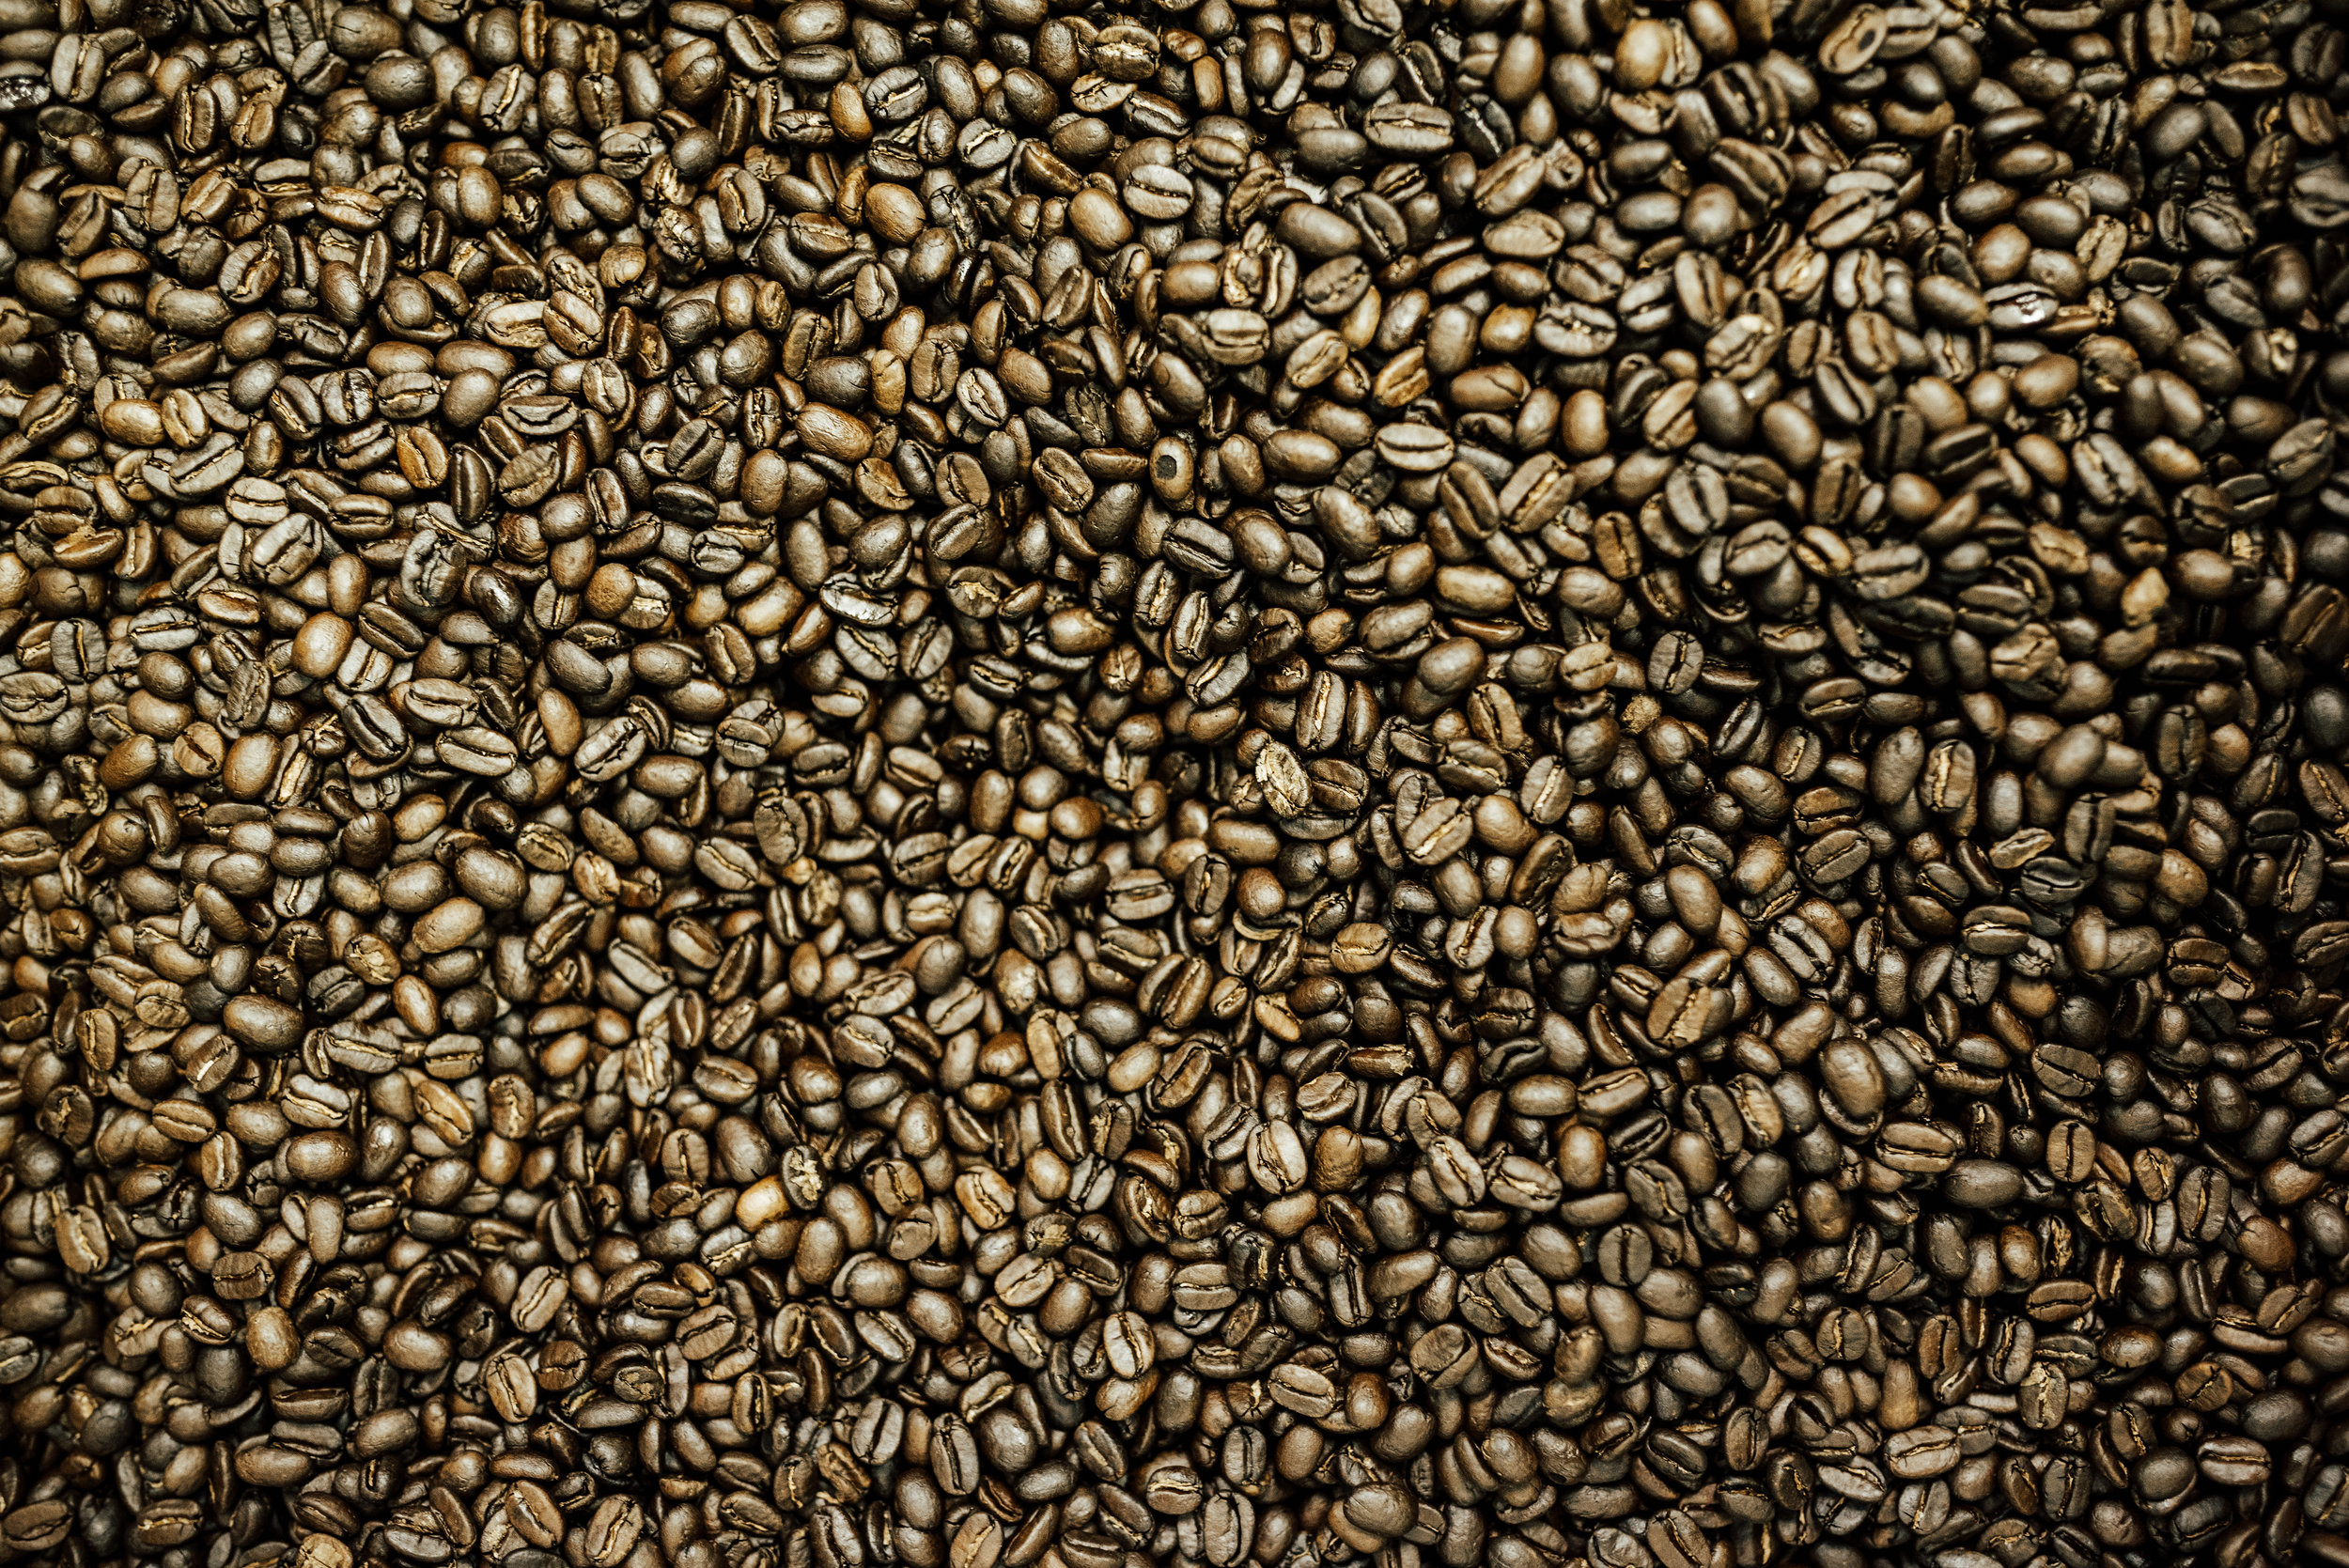 Feel Better about  your coffee! - Always 1lb Always freshly roasted!$16.75